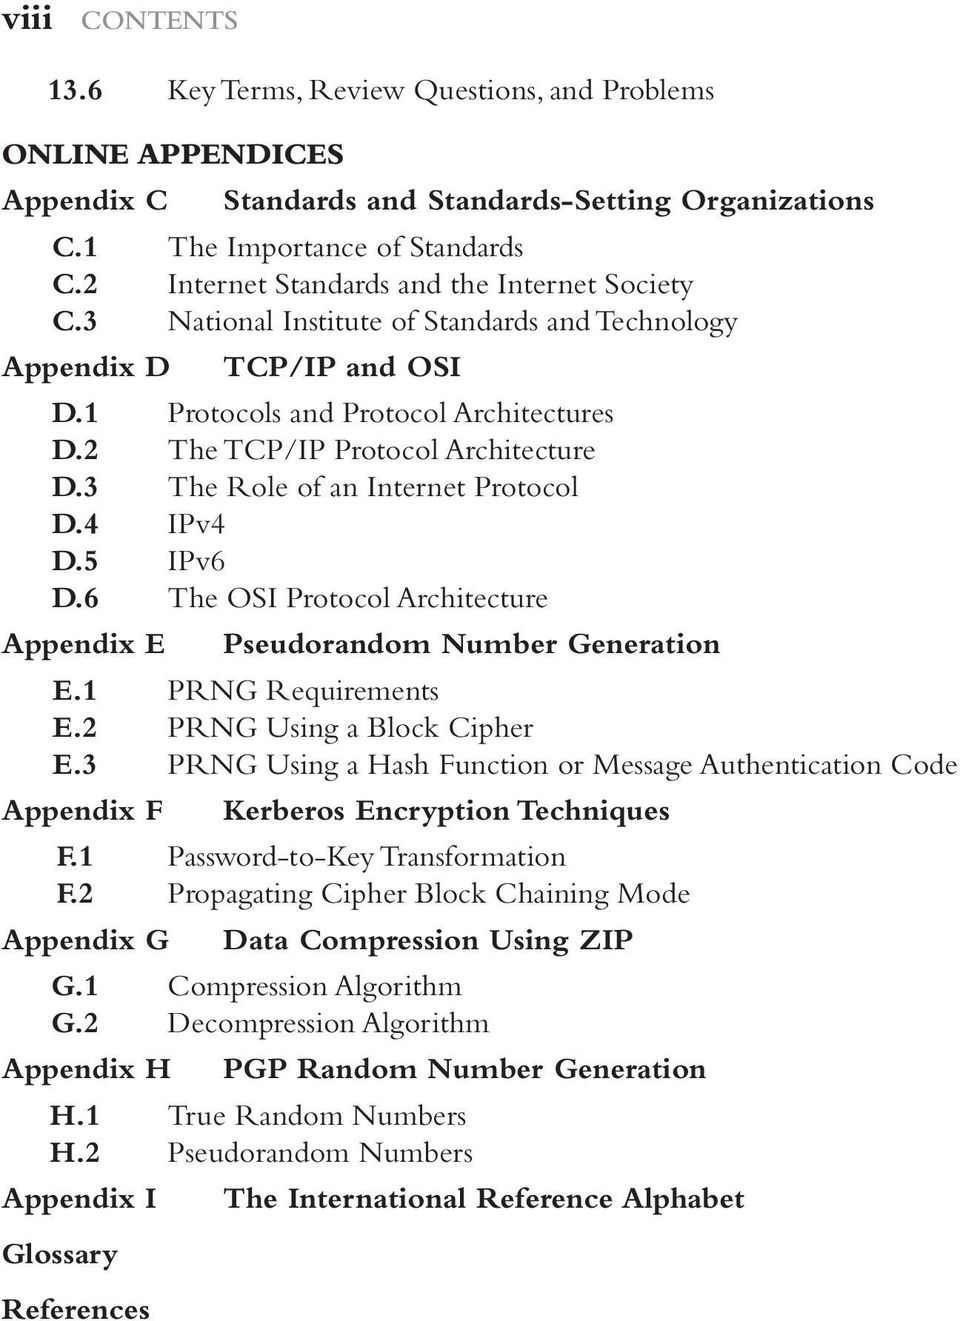 2 The TCP/IP Protocol Architecture D.3 The Role of an Internet Protocol D.4 IPv4 D.5 IPv6 D.6 The OSI Protocol Architecture Appendix E Pseudorandom Number Generation E.1 PRNG Requirements E.